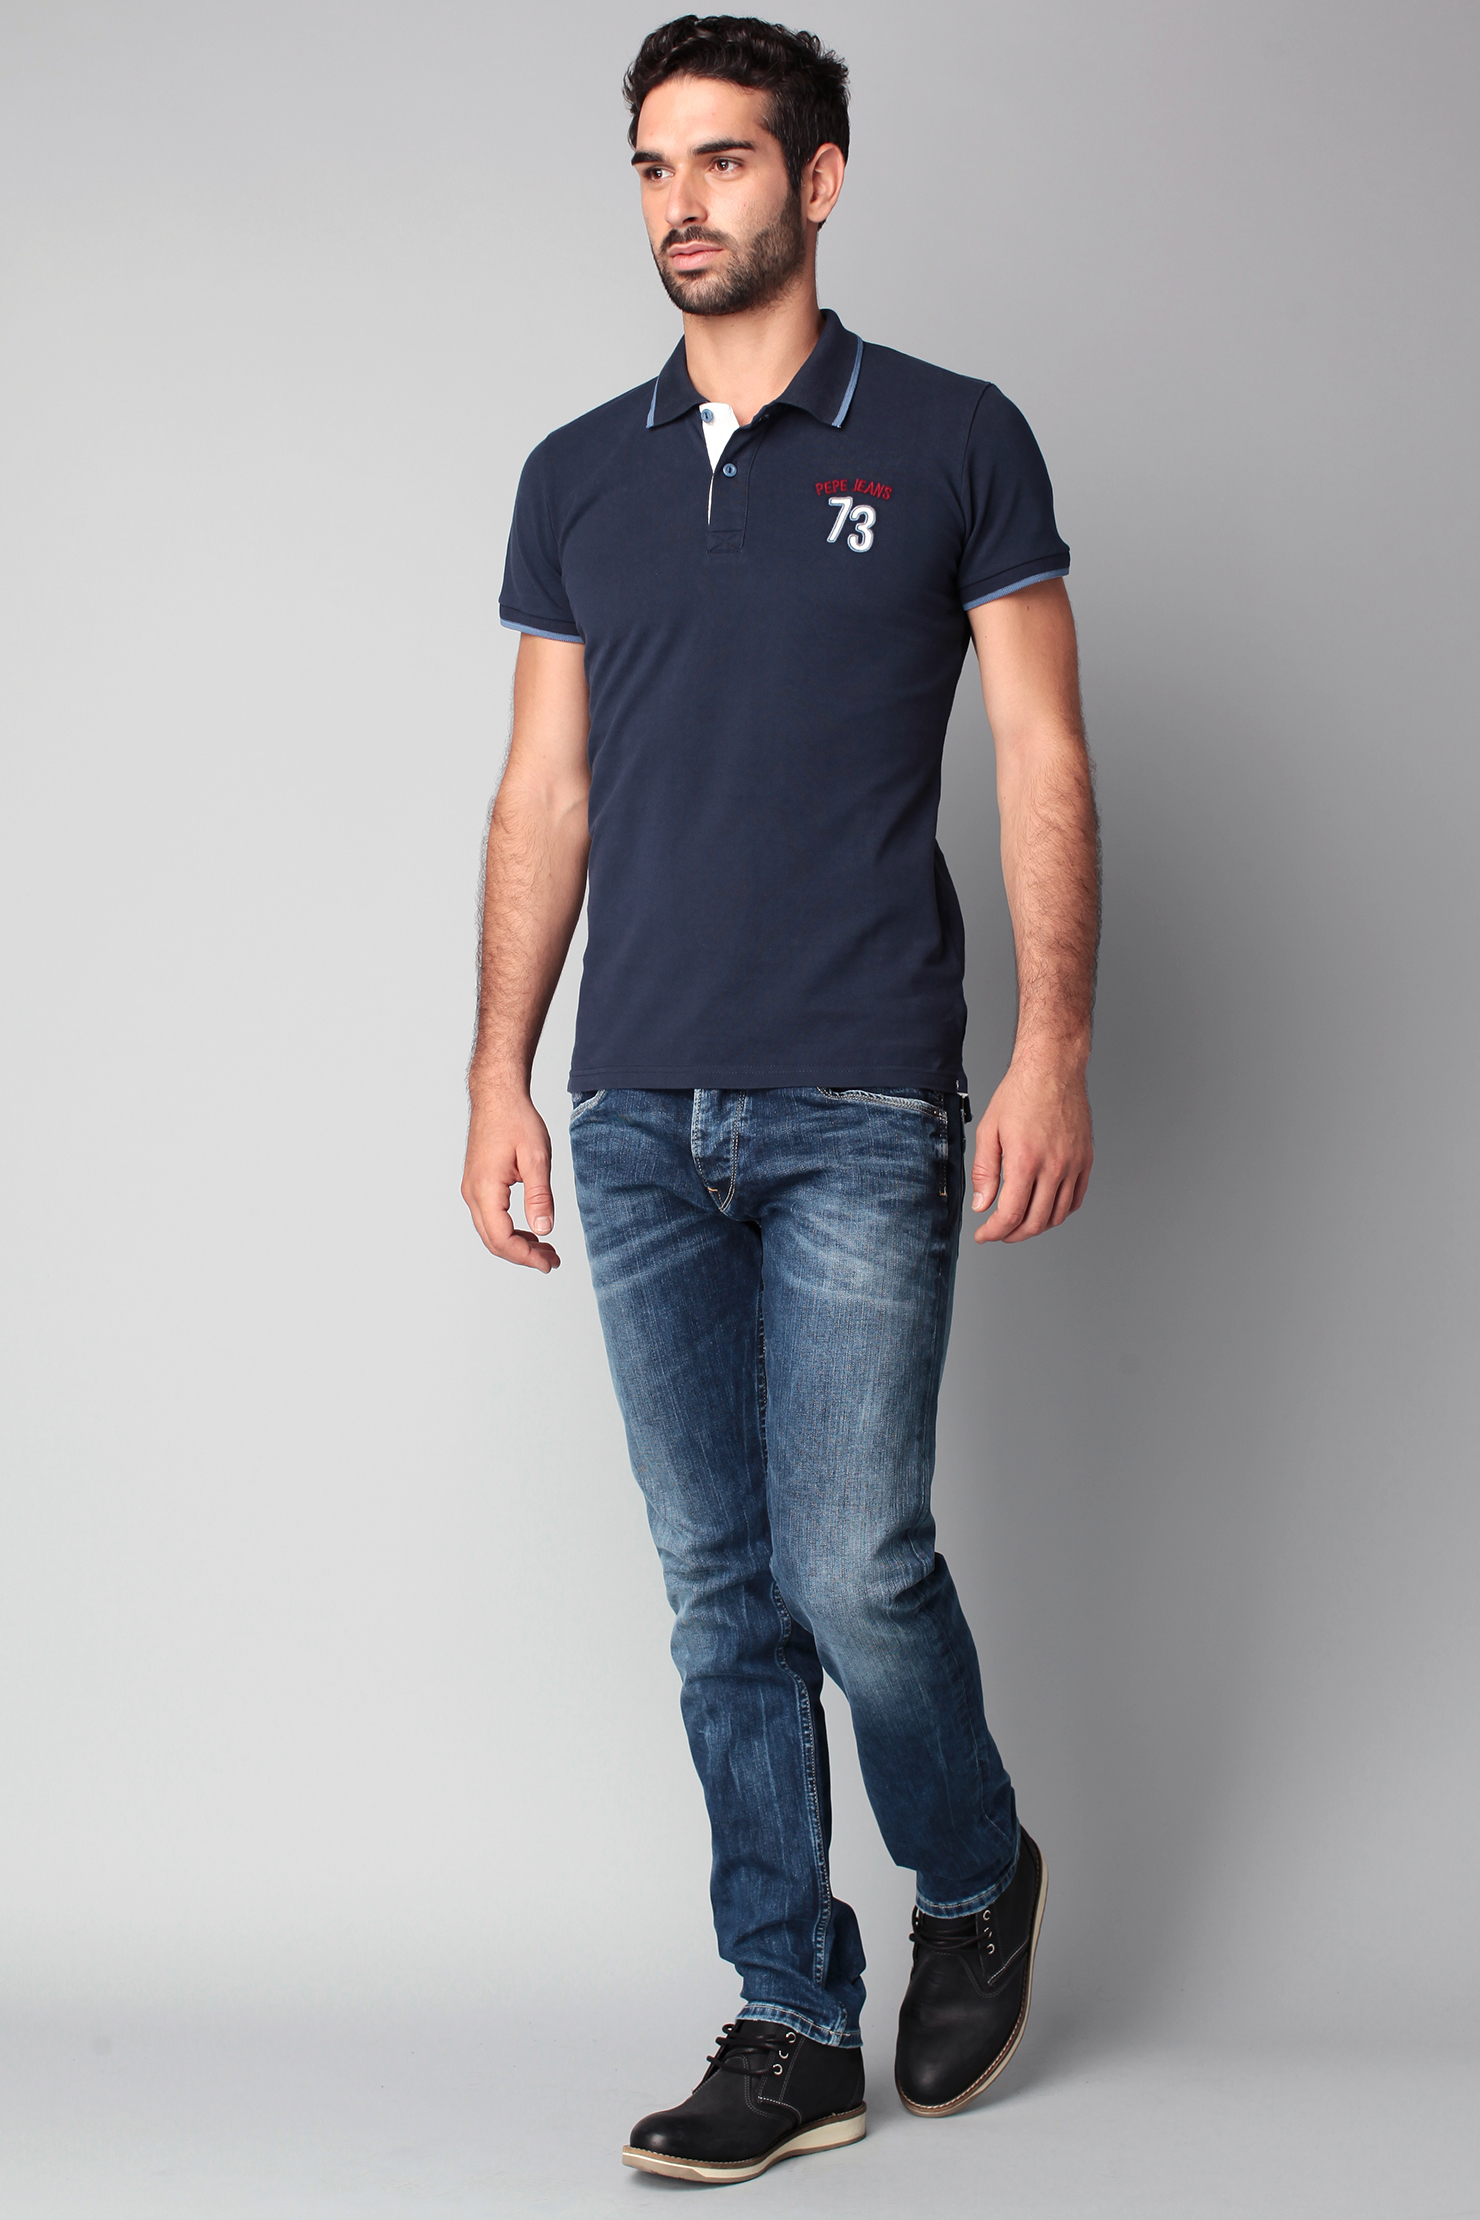 Pepe jeans Polo Shirt in Blue for Men